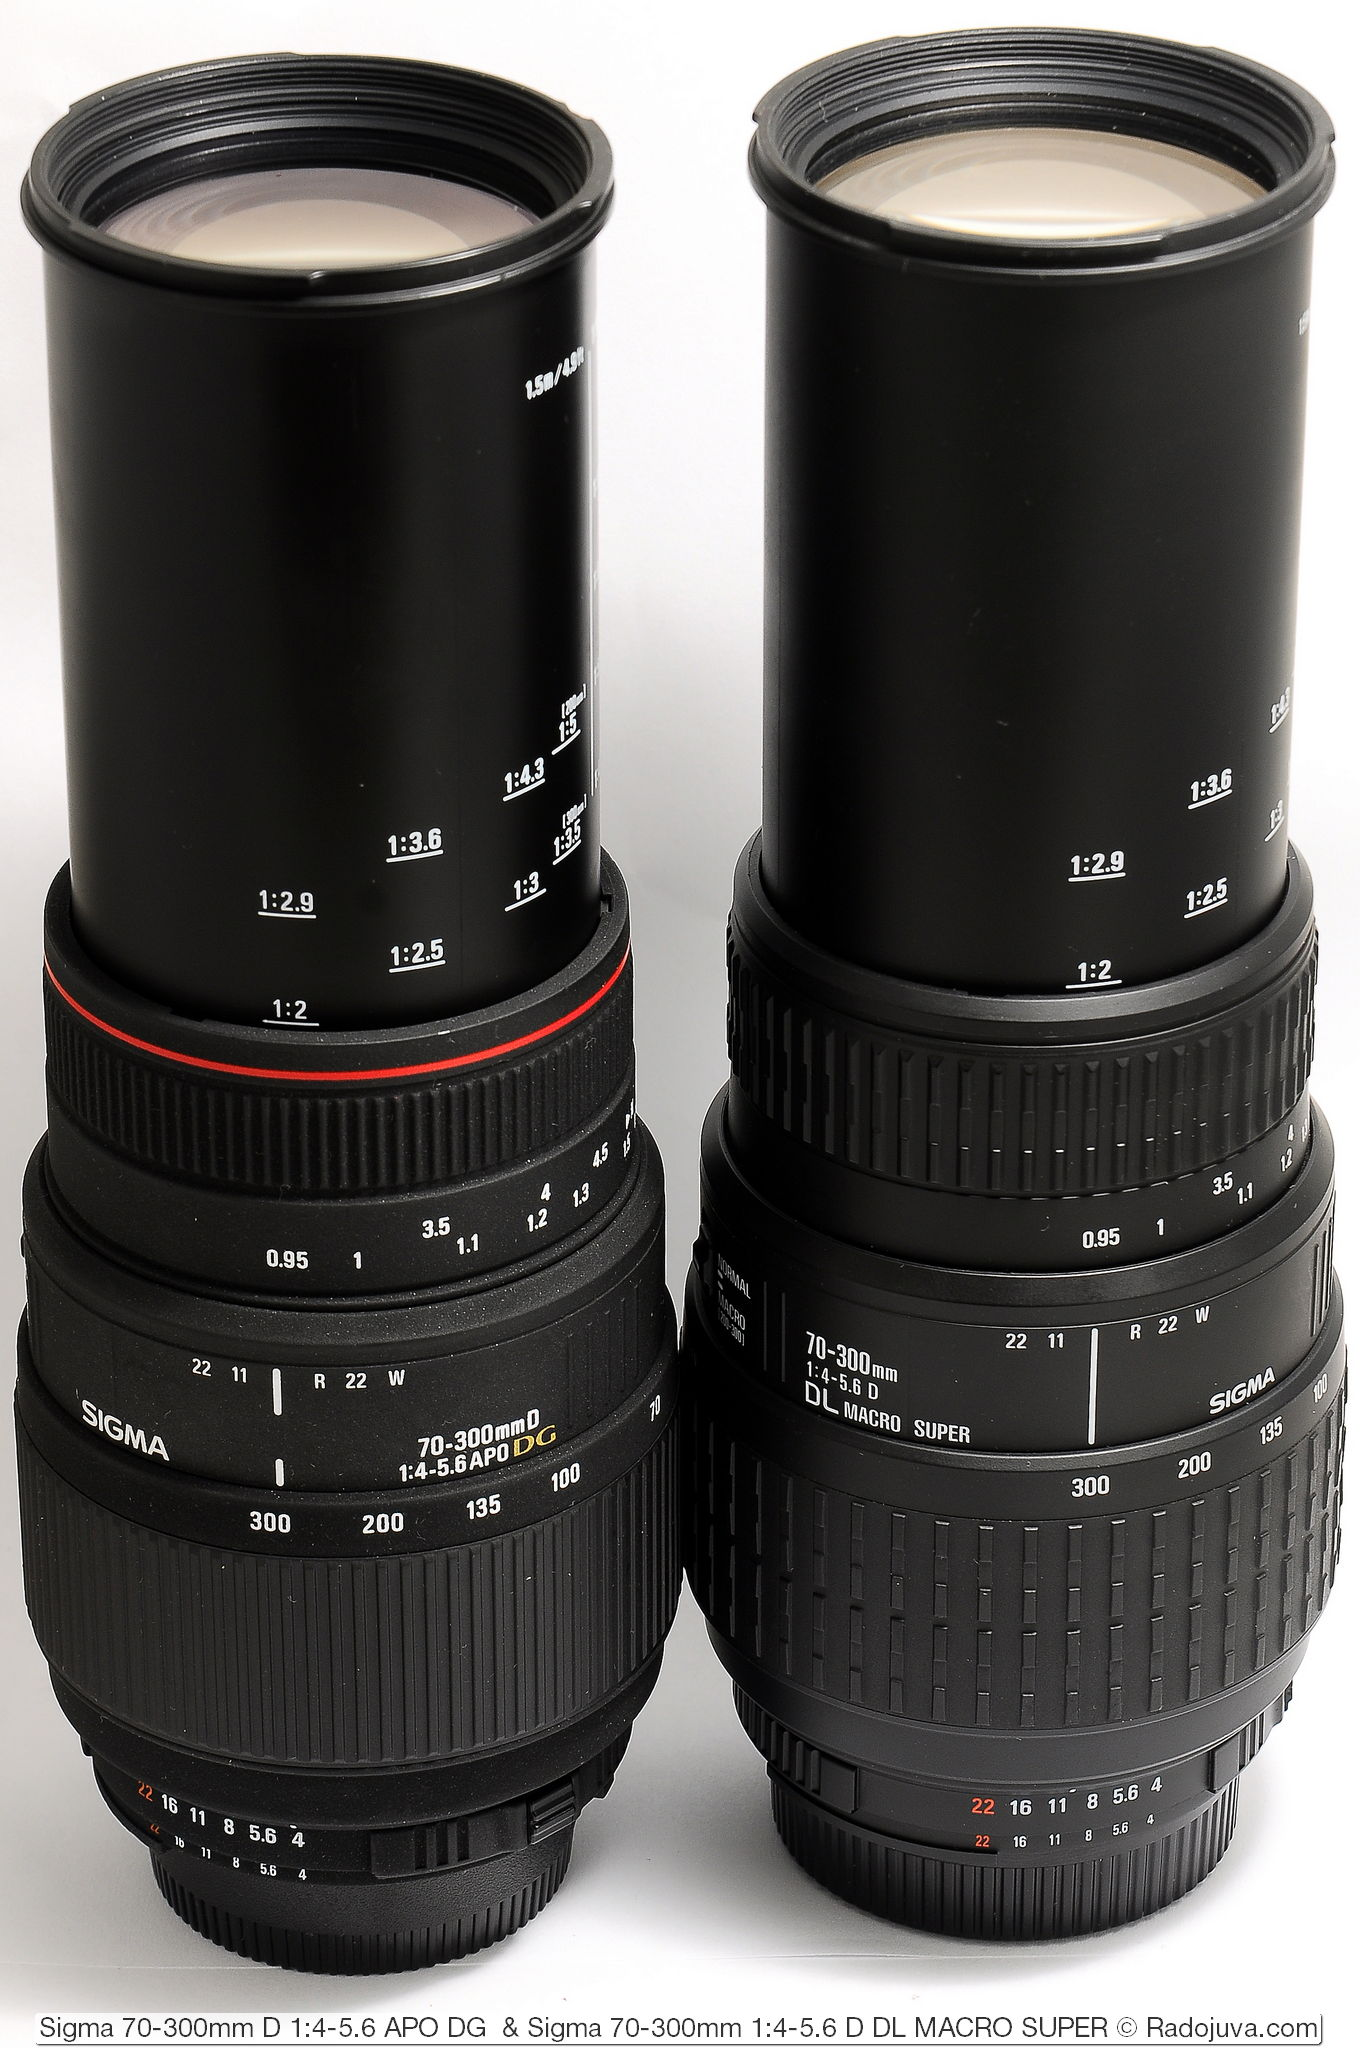 Sigma 70-300mm D 1:4-5.6 APO DG и Sigma 70-300mm 1:4-5.6 D DL MACRO SUPER